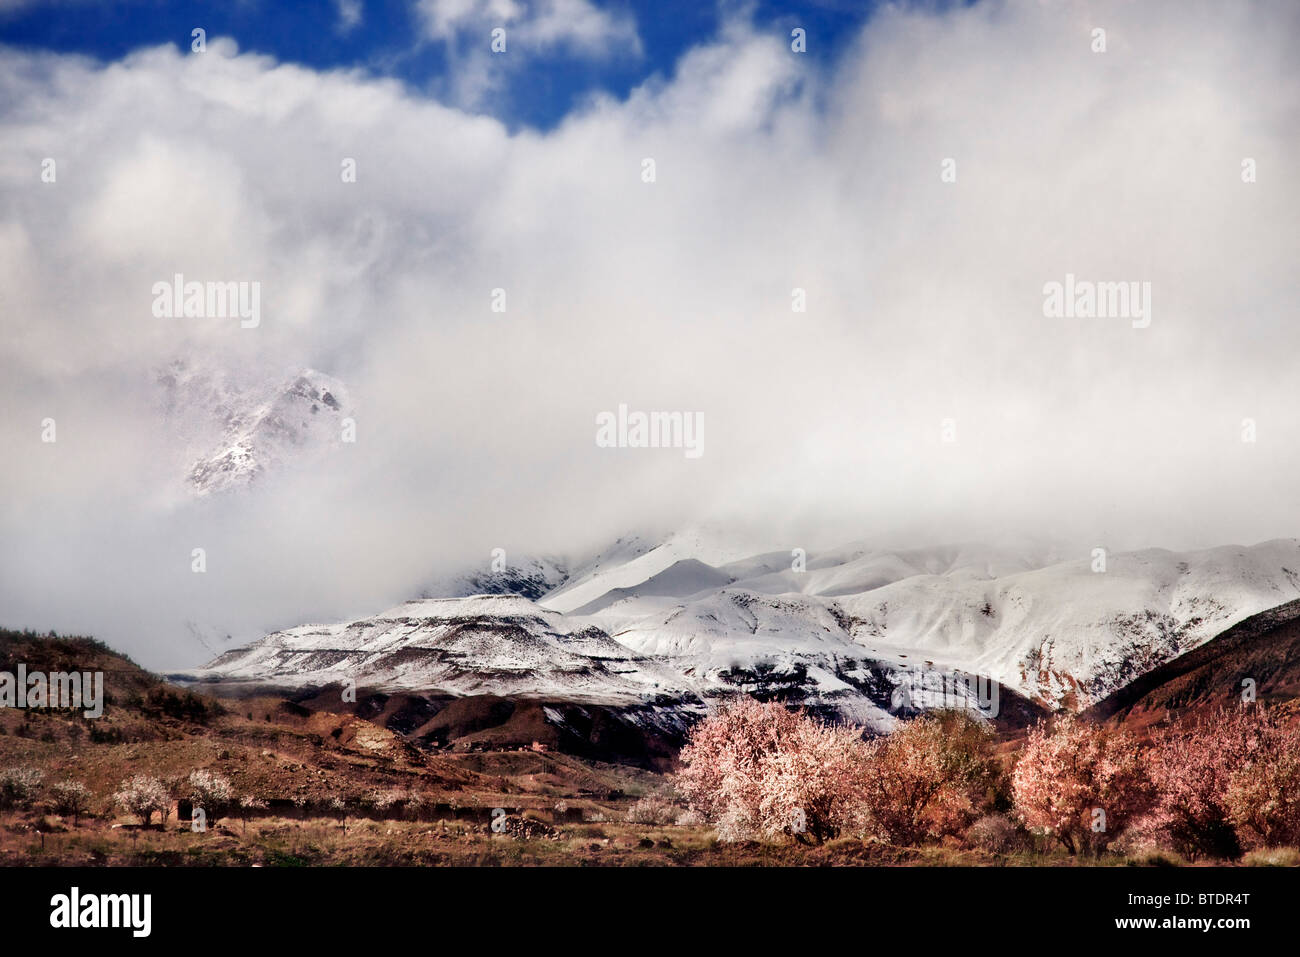 Cloud cover over the snow-covered peaks of the High Atlas mountain - Stock Image